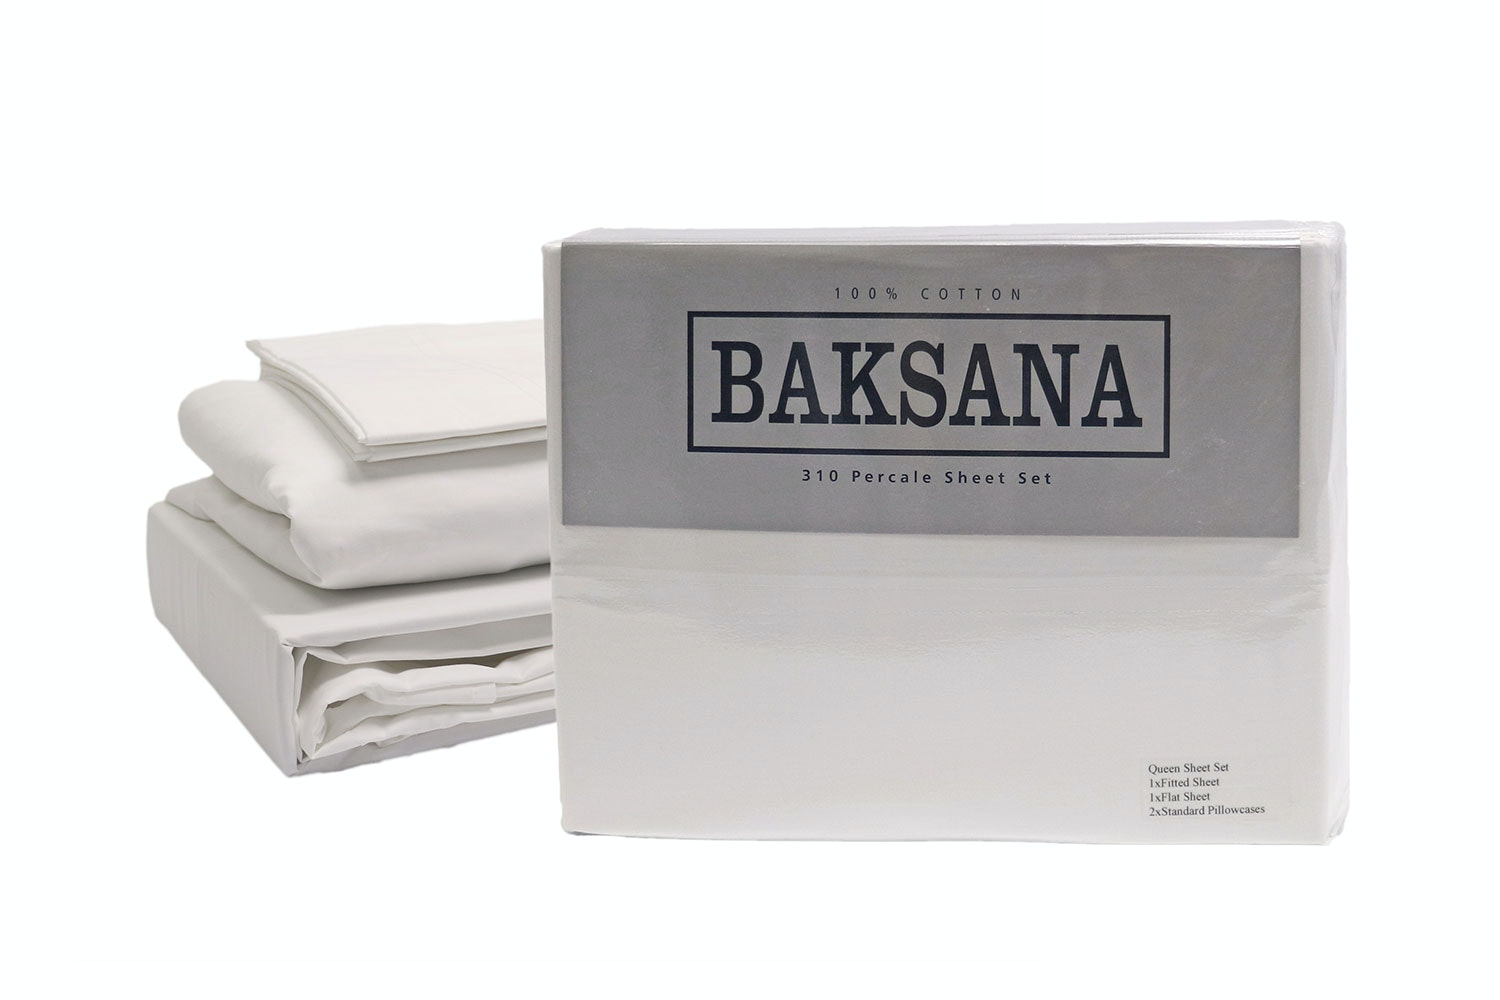 310TC 100% Cotton Percale Sheet Set by Baksana